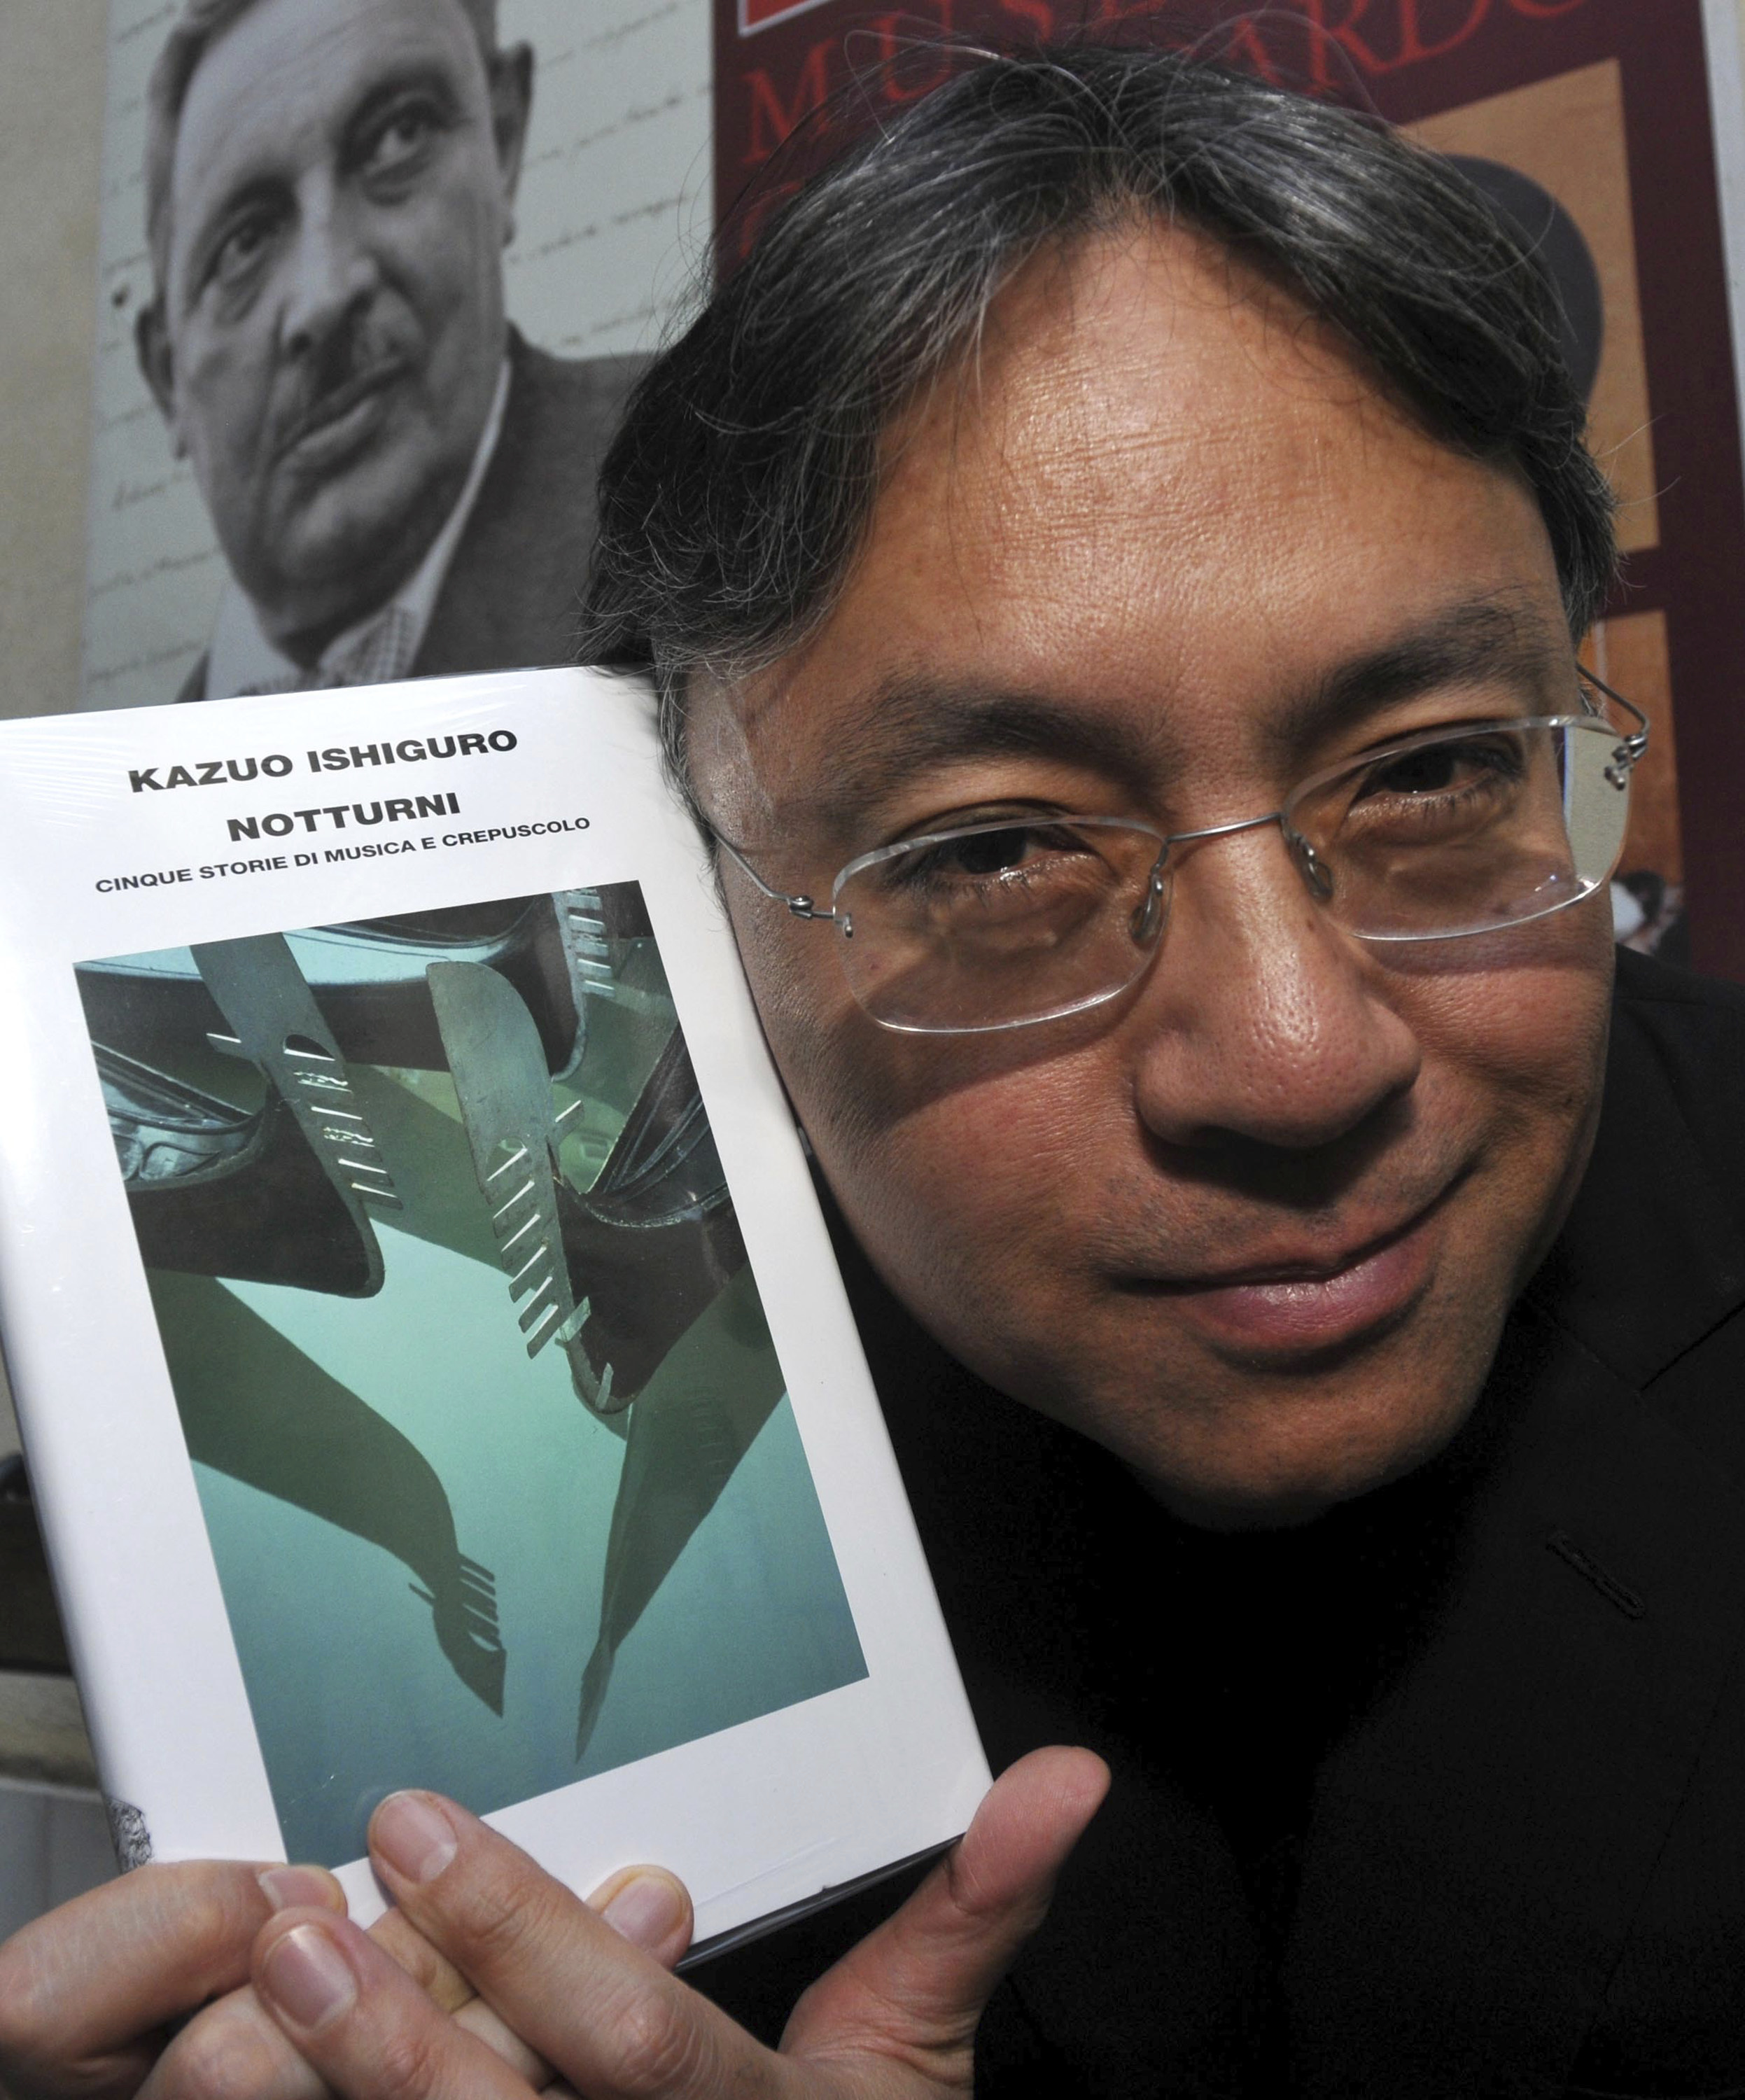 "FILE - In this Saturday, Aug 8, 2009 file photo, author Kazuo Ishiguro shows his book ""Nocturnals"" before receiving the ""Giuseppe Tomasi di Lampedusa"" prize for literature, in Santa Margherita Belice, near Palermo, Sicily, southern Italy.  The Nobel Prize for Literature for 2017 has been awarded to British novelist Kazuo Ishiguro, it was announced on Thursday, Oct. 5, 2017. (AP Photo/Alessandro Fucarini, File)"